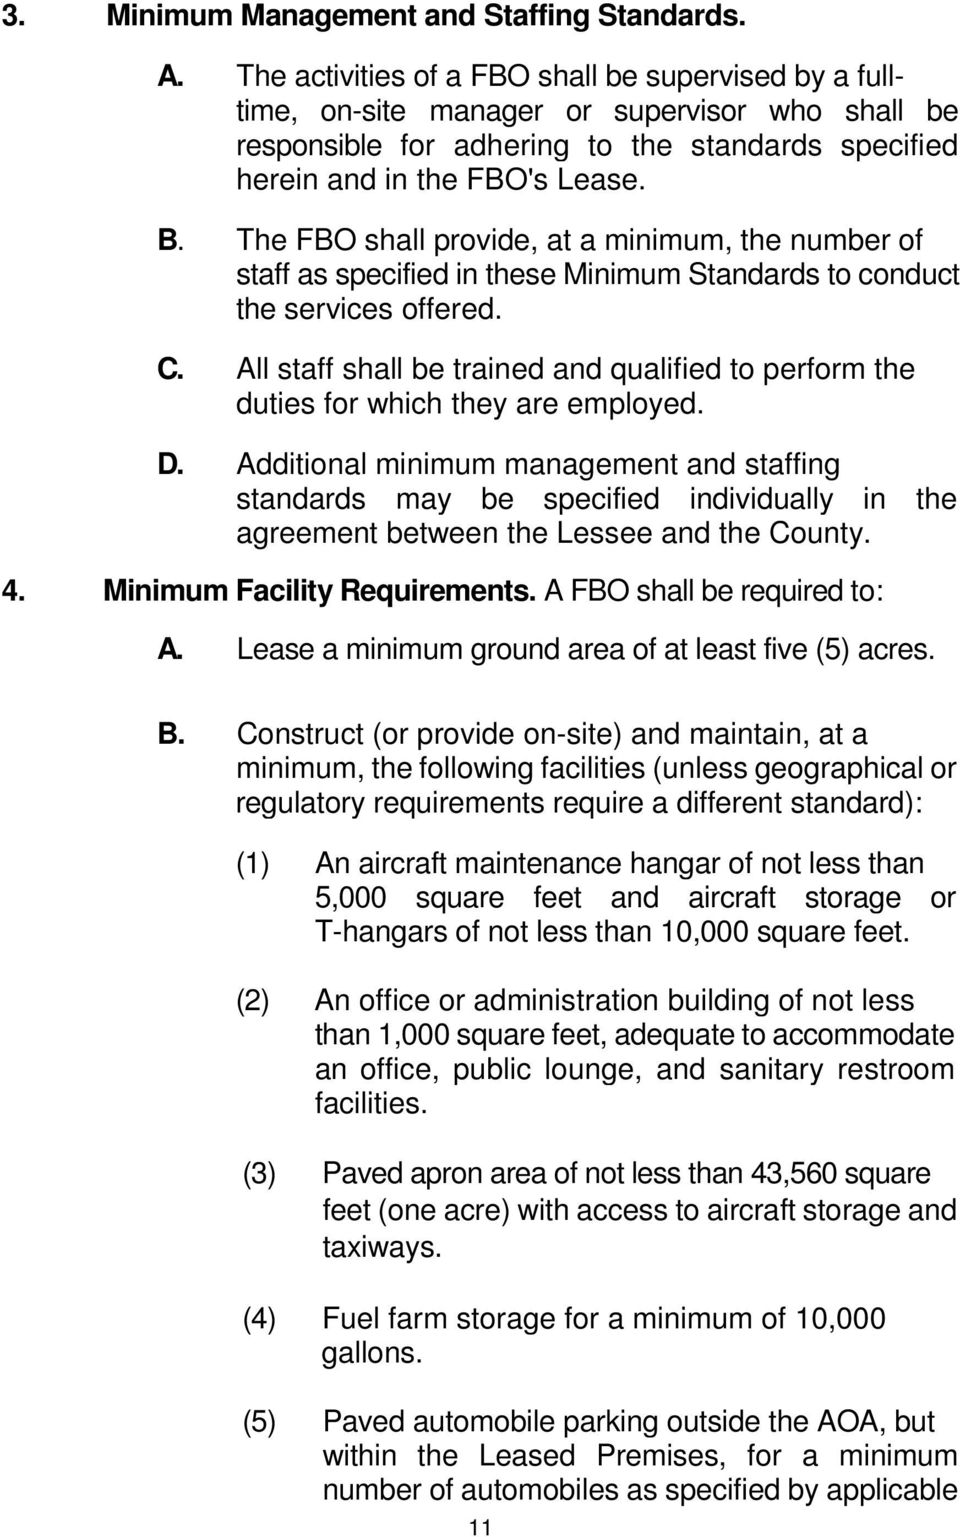 The FBO shall provide, at a minimum, the number of staff as specified in these Minimum Standards to conduct the services offered. C.